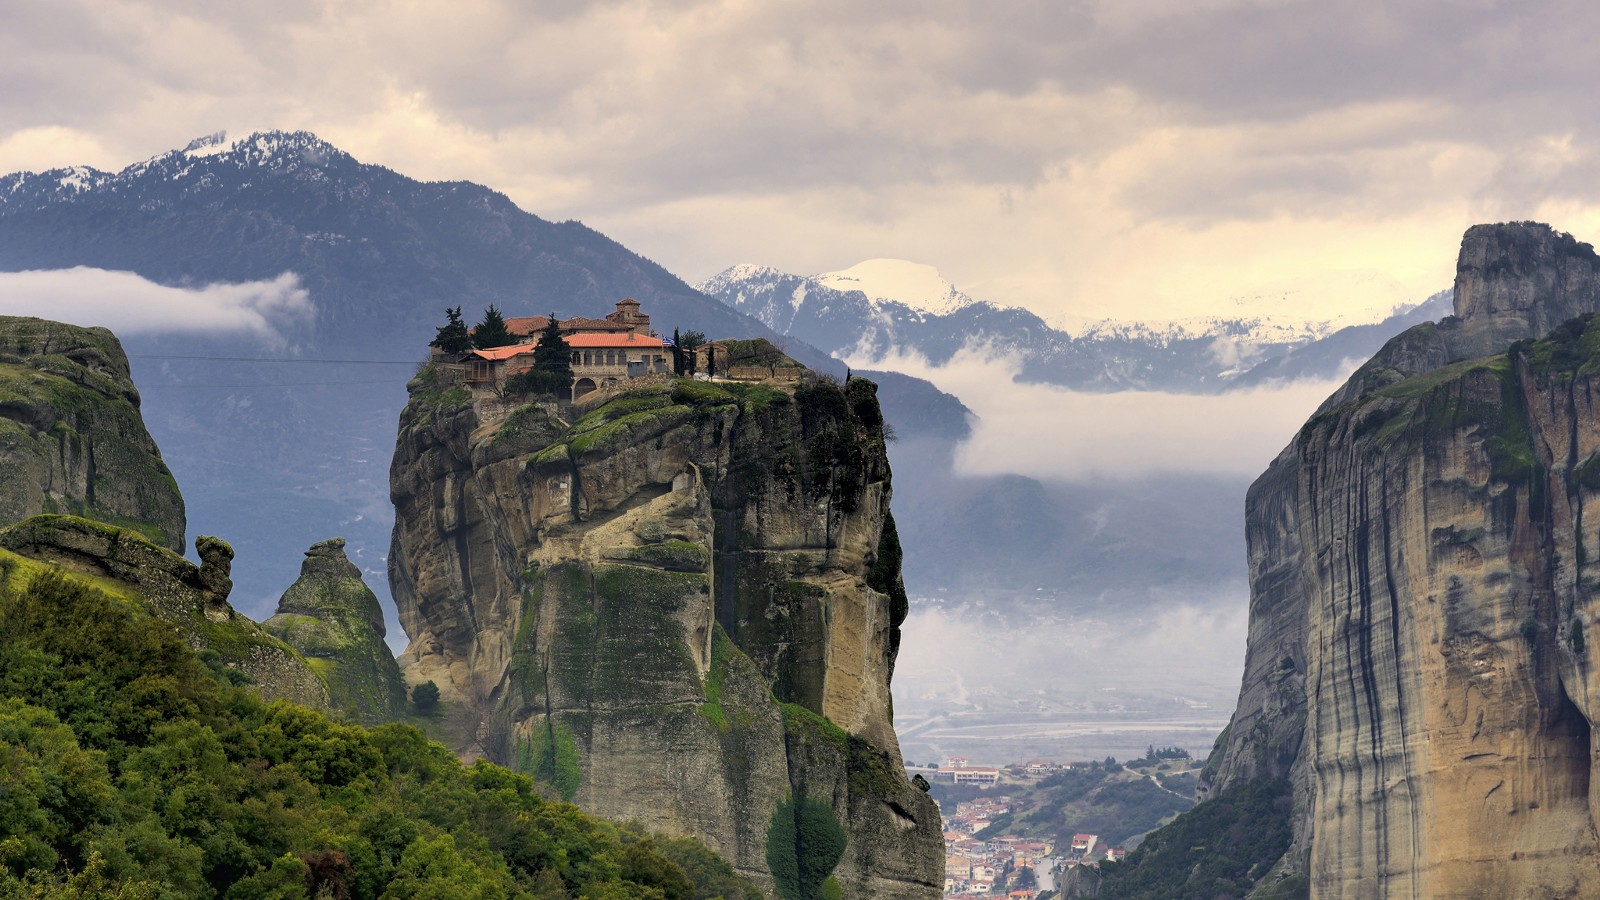 Meteora, a complex of Eastern Orthodox monasteries in Greece